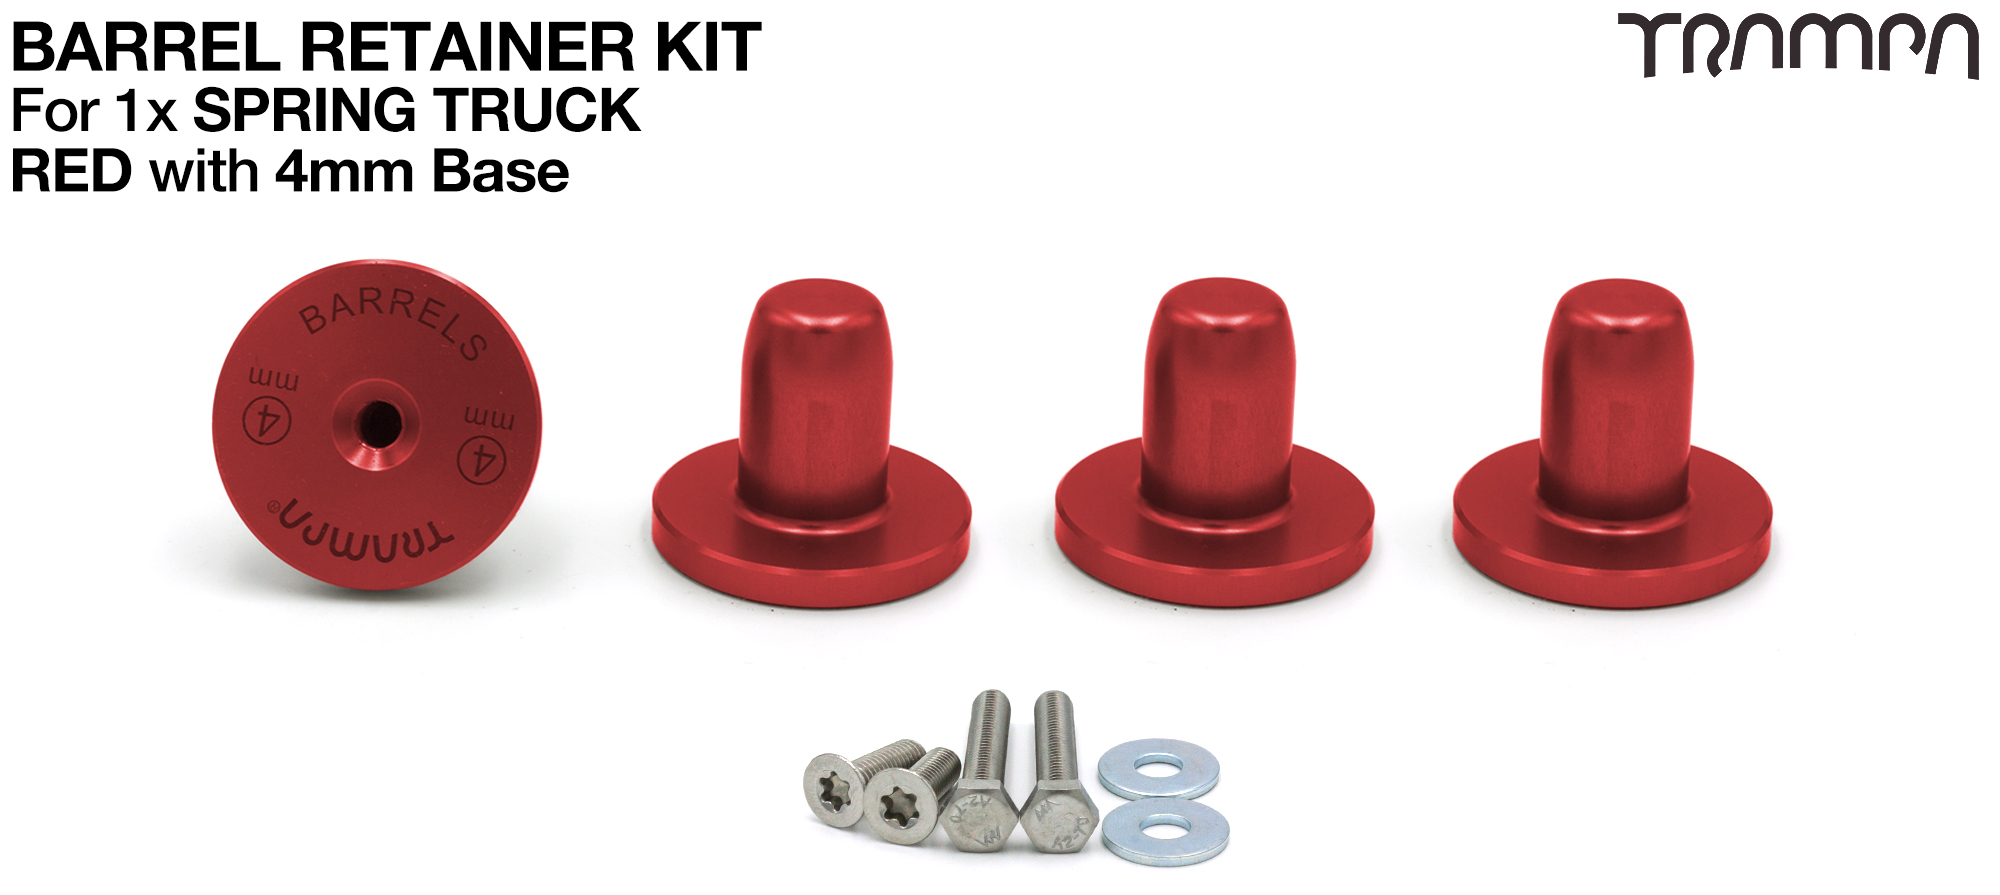 RED Barrel Retainers x4 with 4mm Base RED